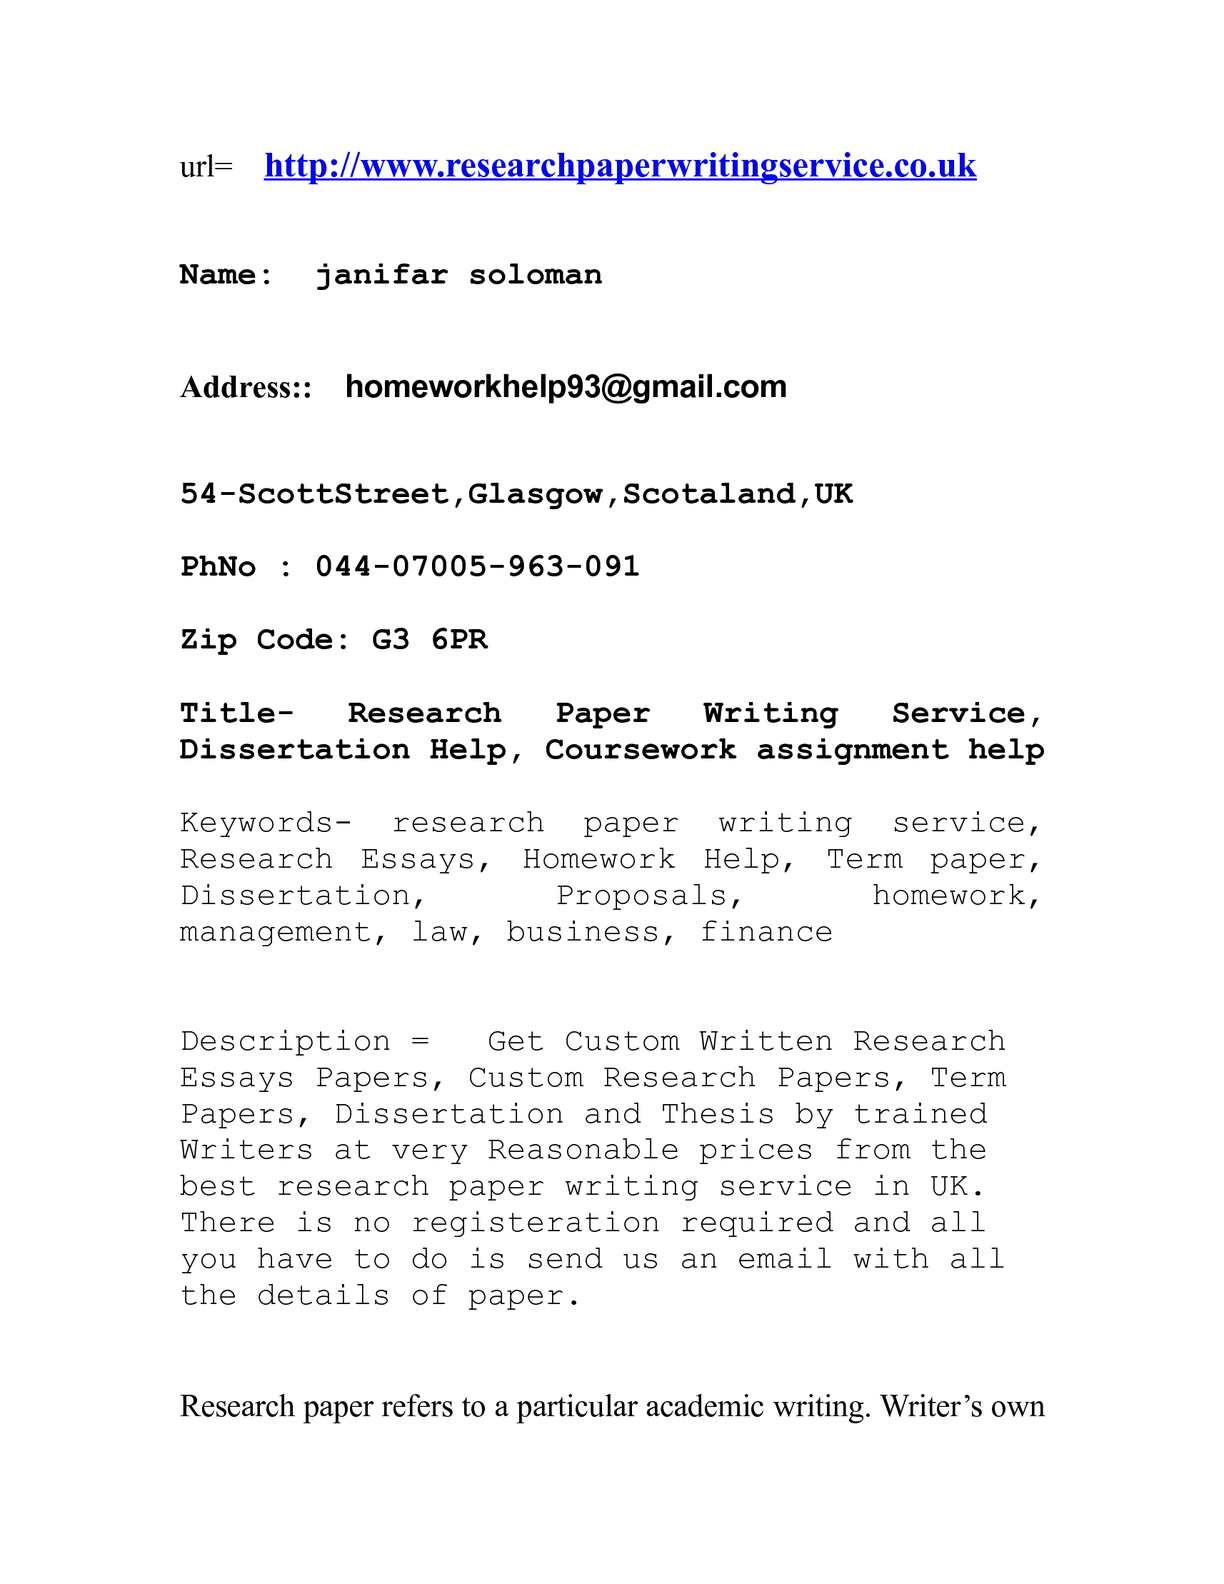 Term paper writers site us cover letter for an email response